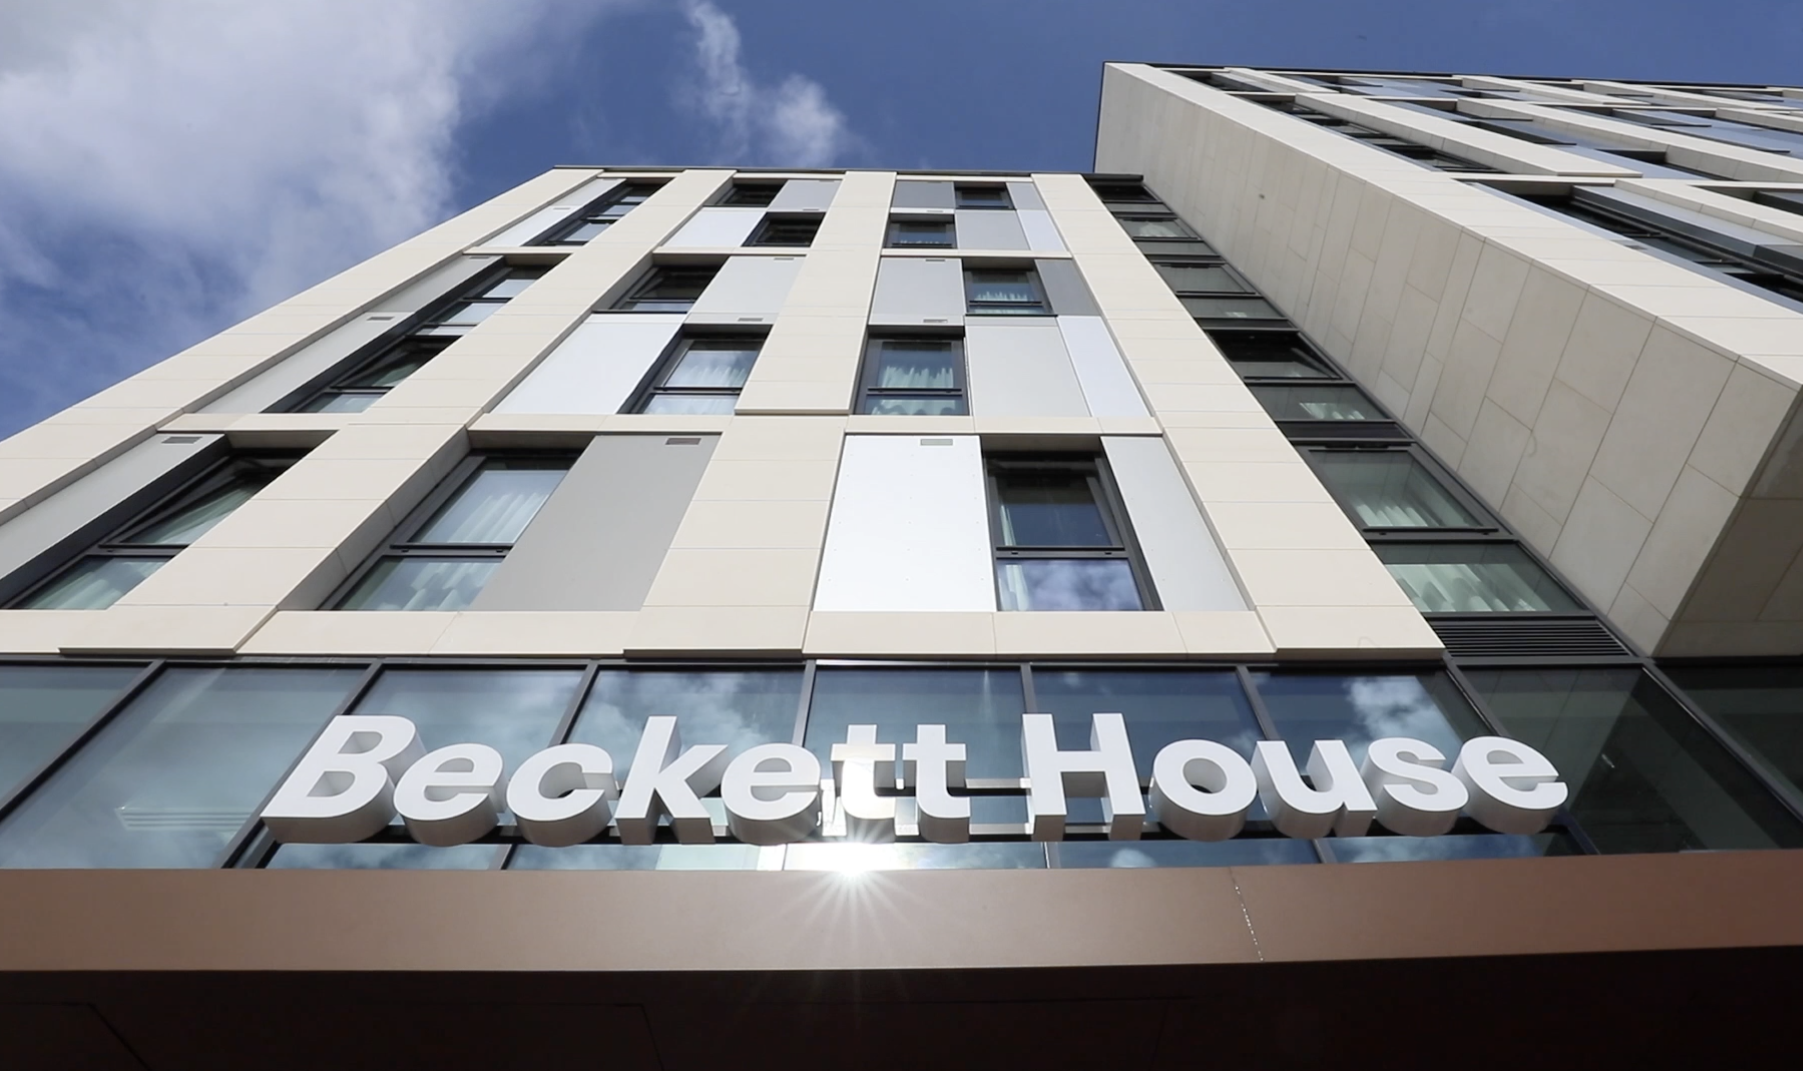 beckett-house-image-0